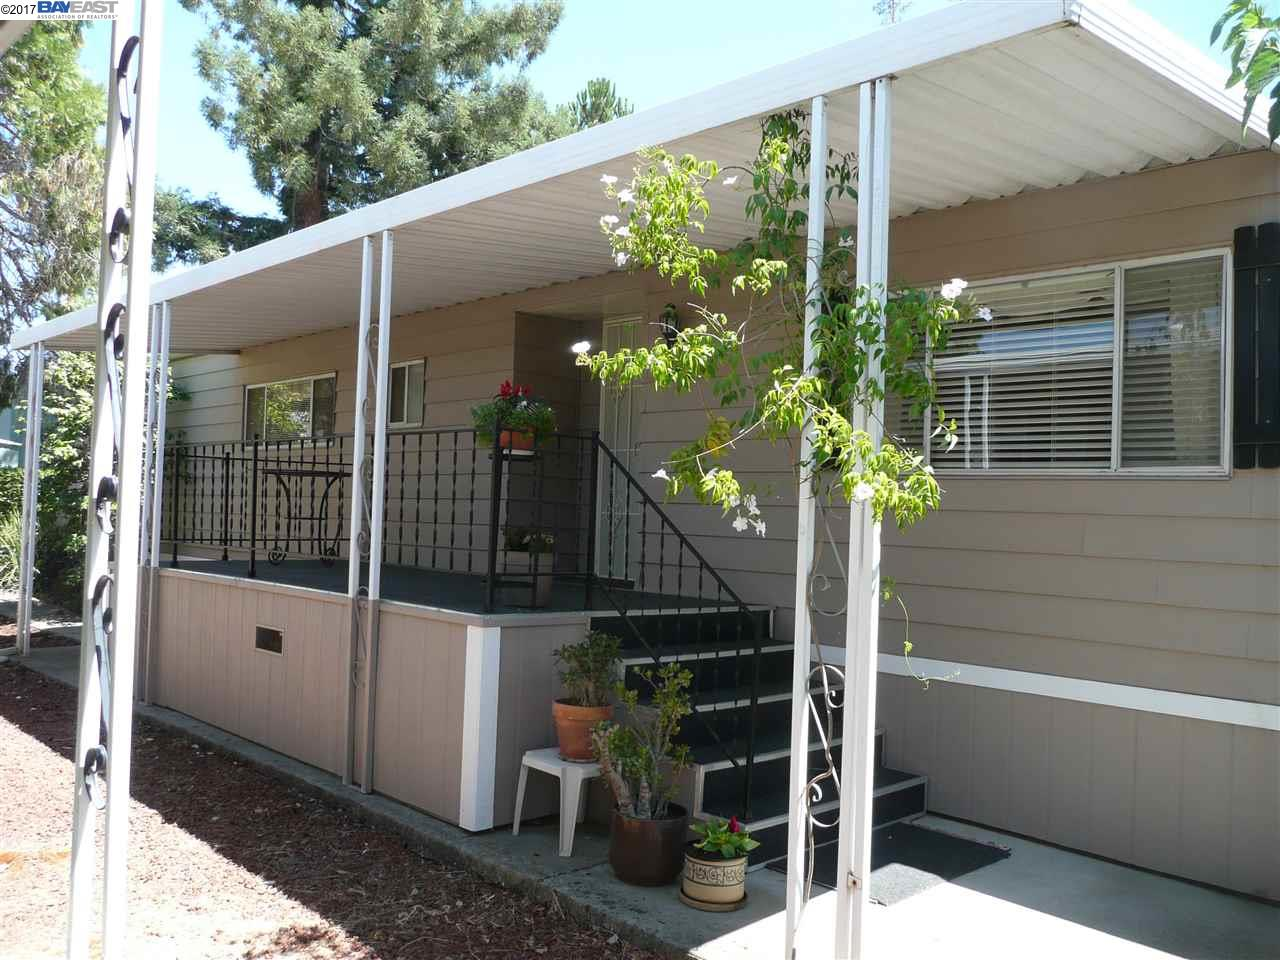 Additional photo for property listing at 3231 Vineyard Ave., #123  Pleasanton, California 94566 United States